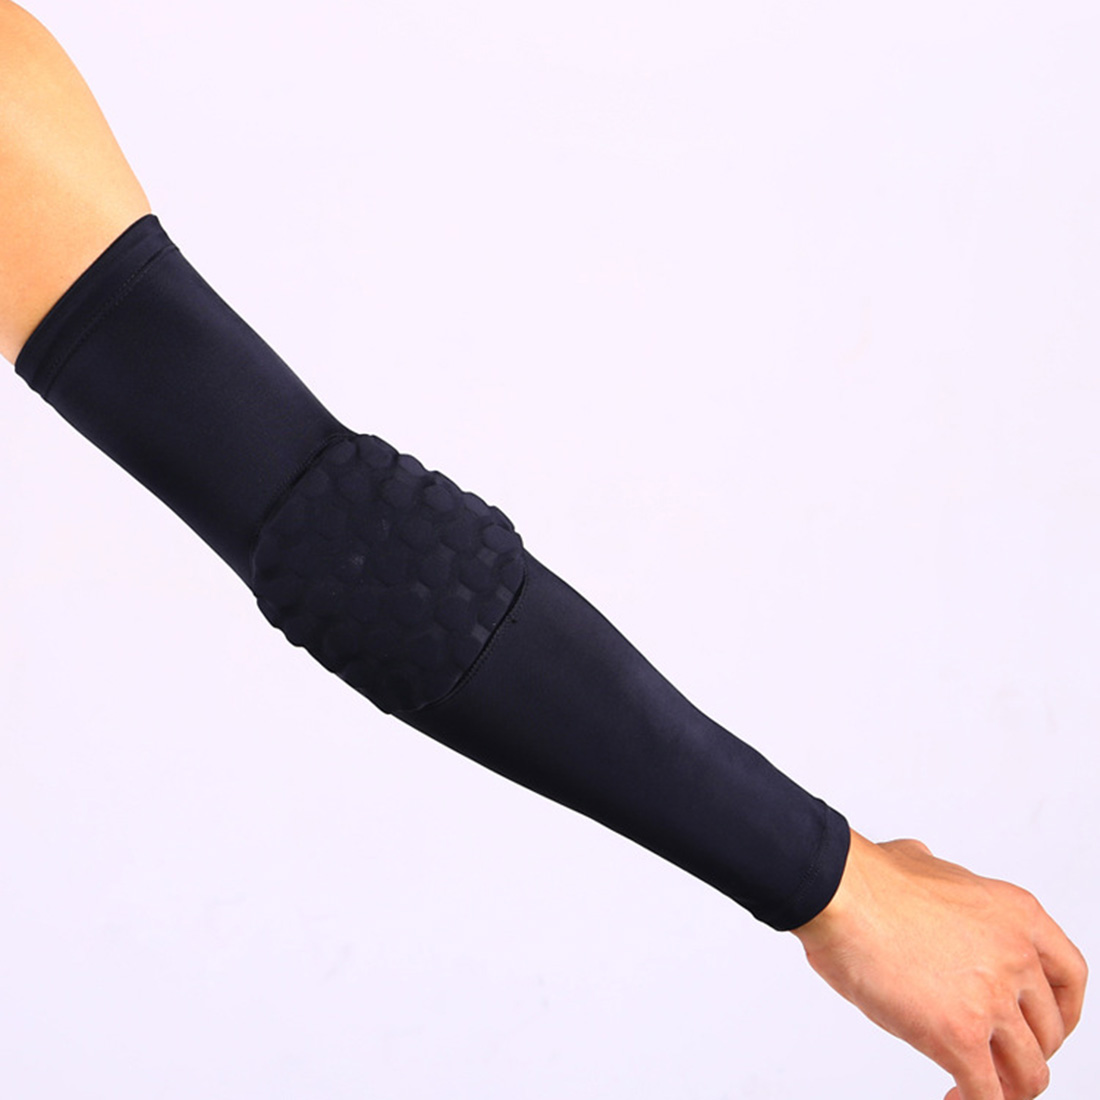 1pcs Basketball Elbow Support Protector Bicycle Cycling Sports Safety Elbow Pad Long Arm Sleeve Xrq88 Cheapest Price From Our Site Men's Arm Warmers